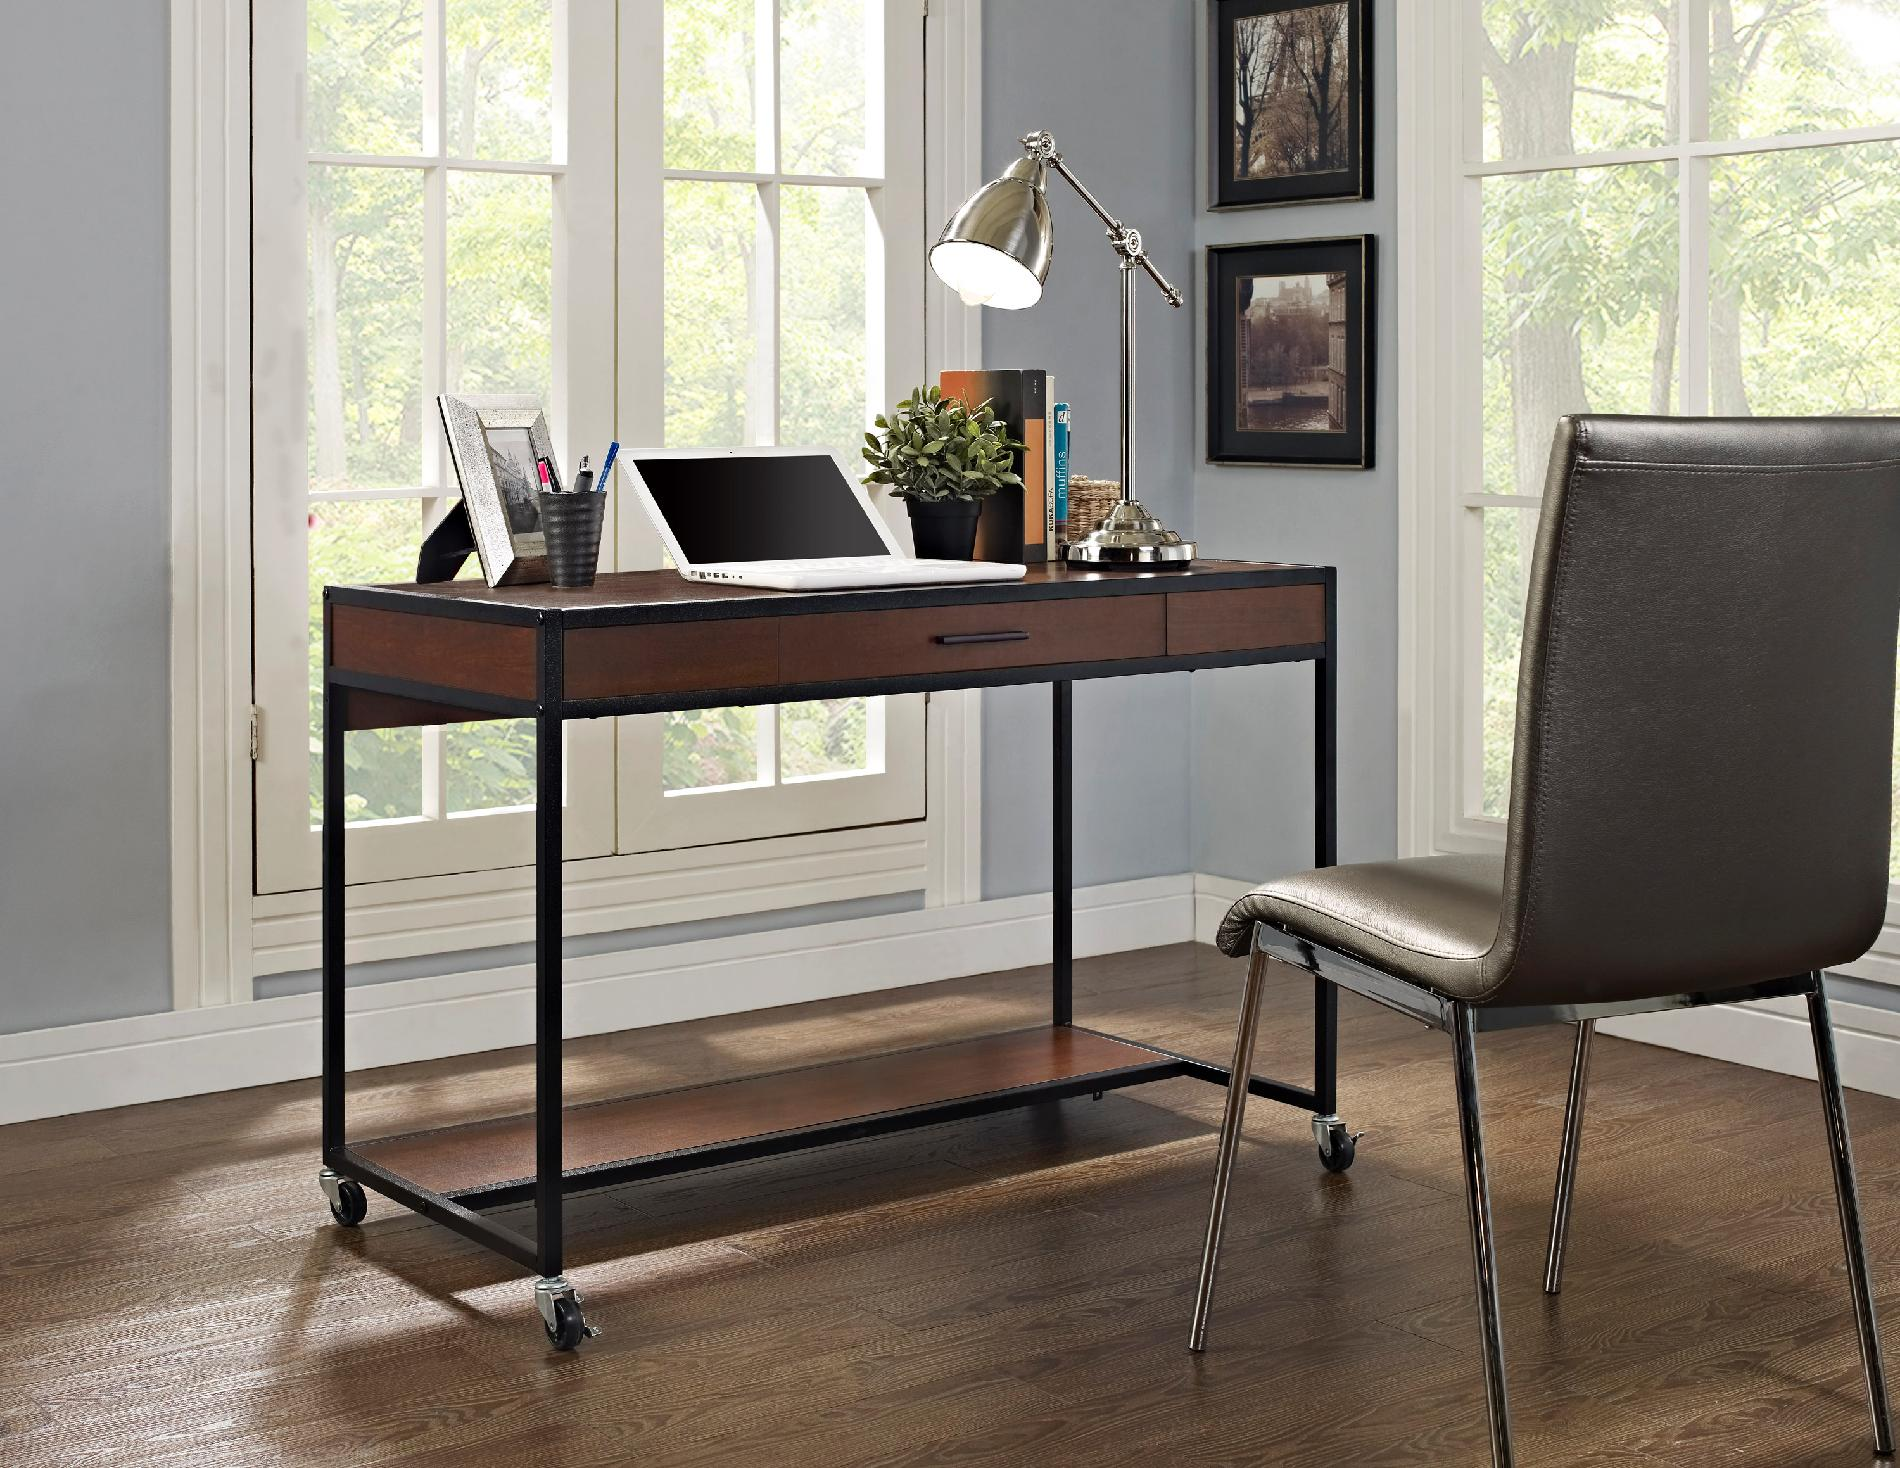 Cherry Madison Ridge Modern Desk with Wheels